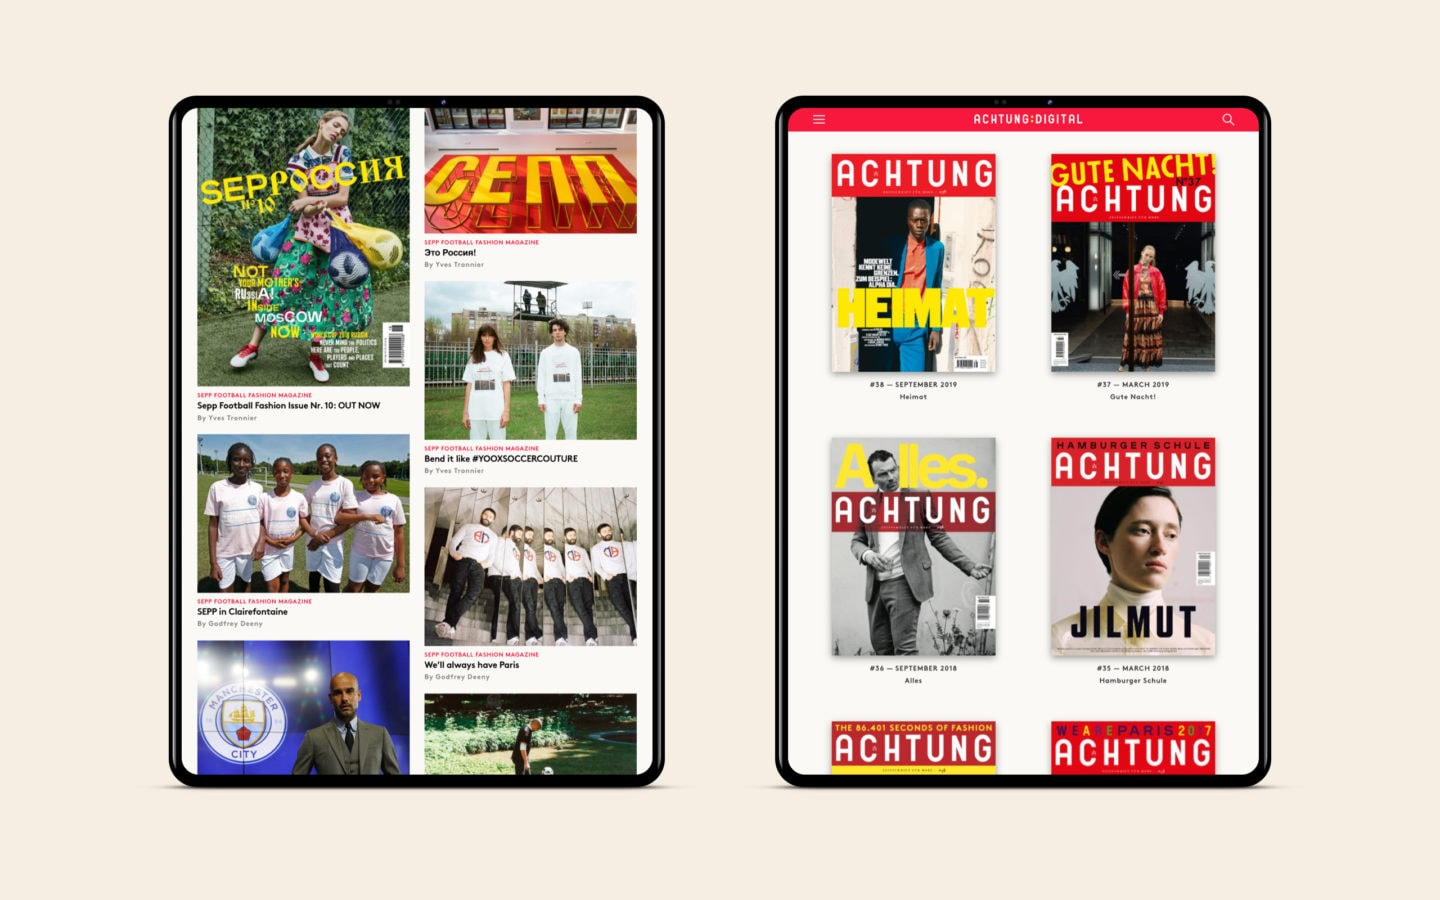 Achtung Mode Blog Archives [tablet]